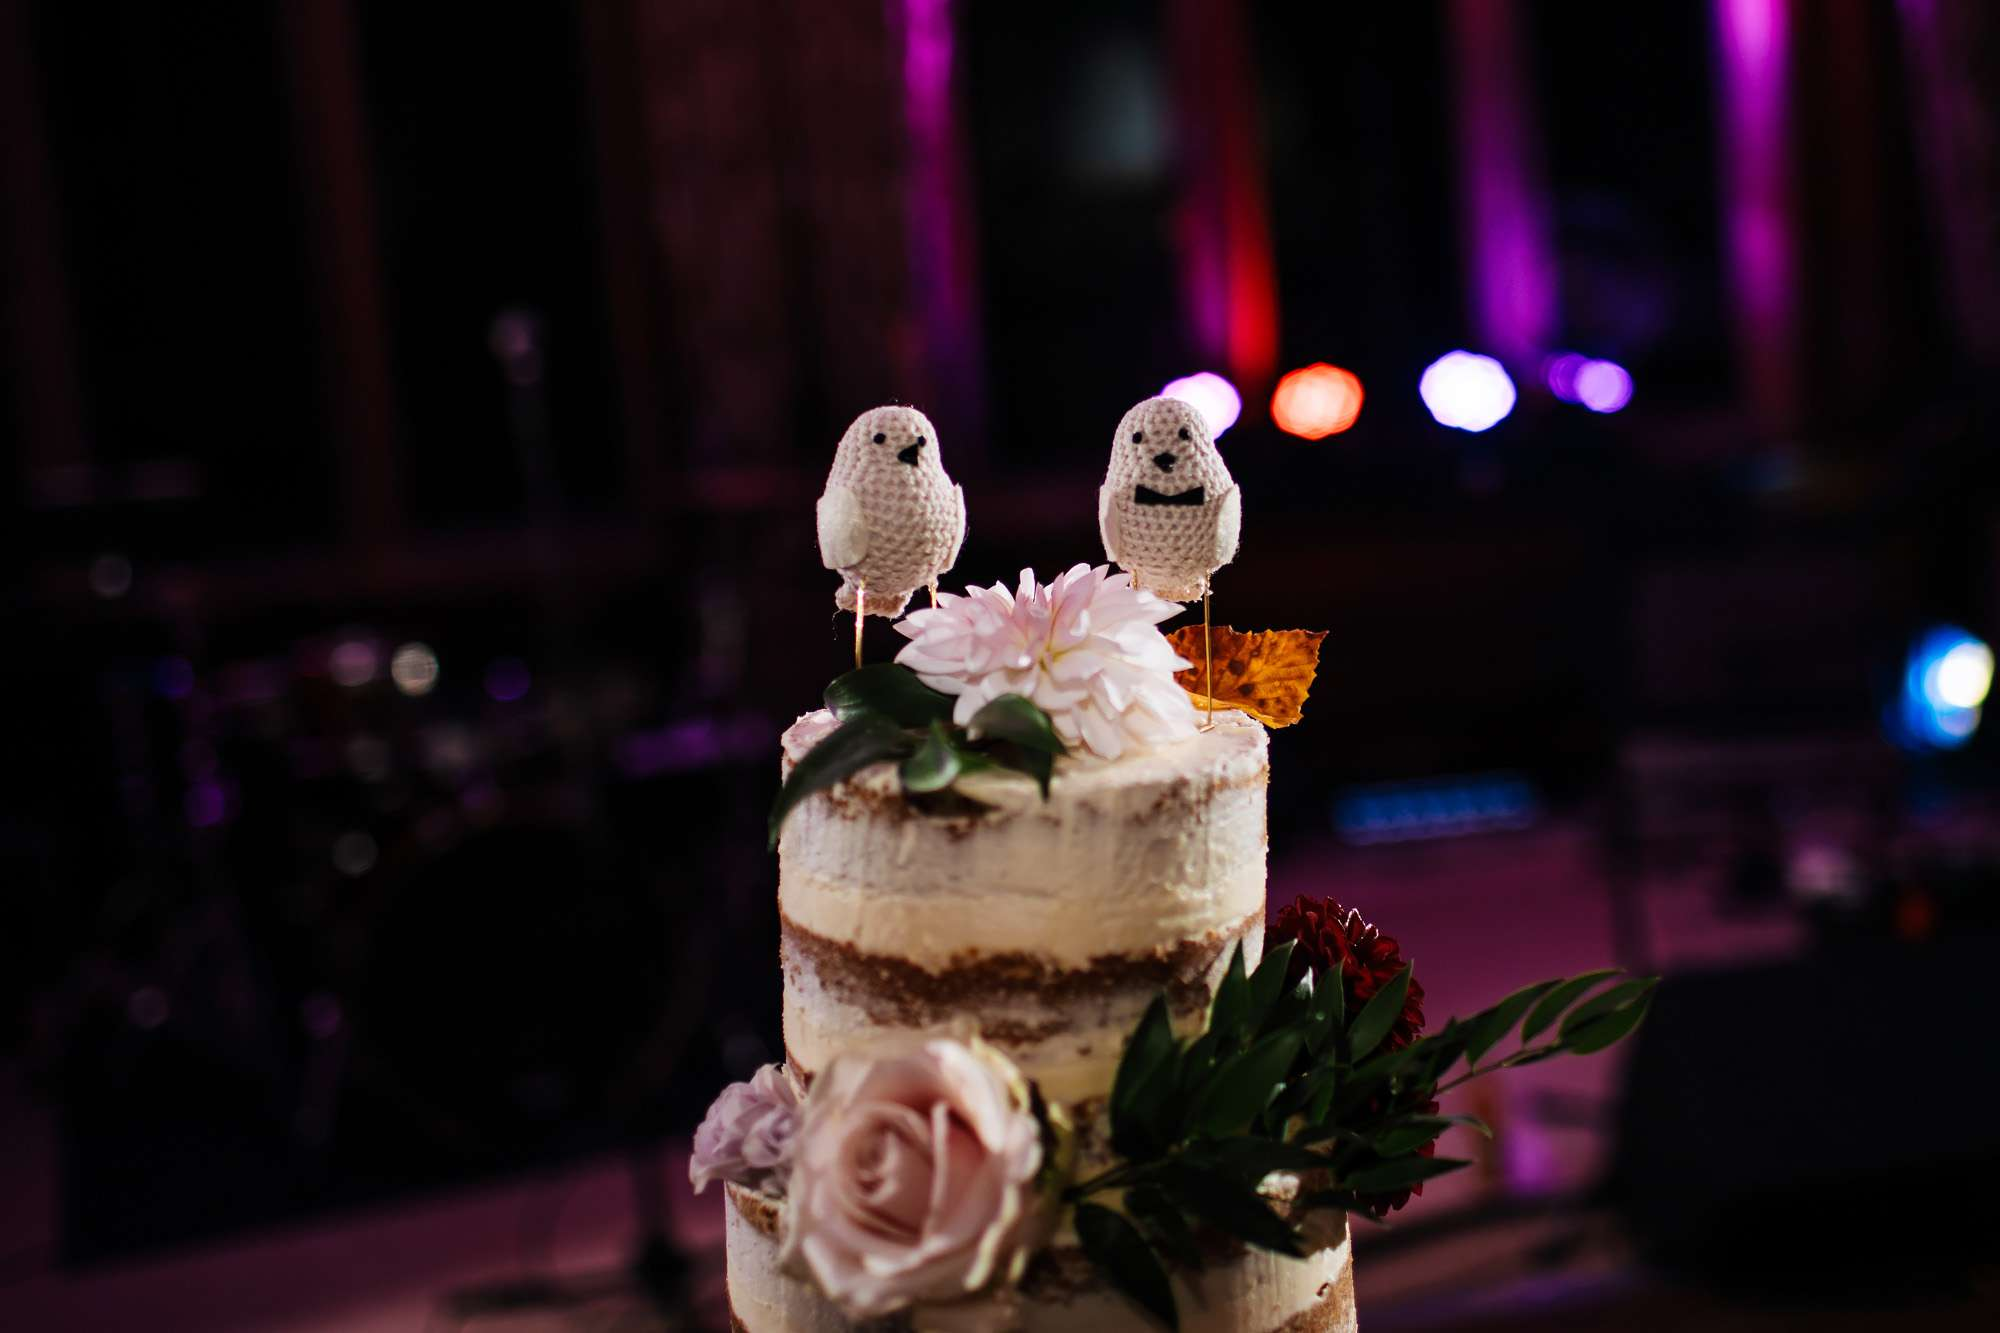 Close up of two knitted birds on a wedding cake